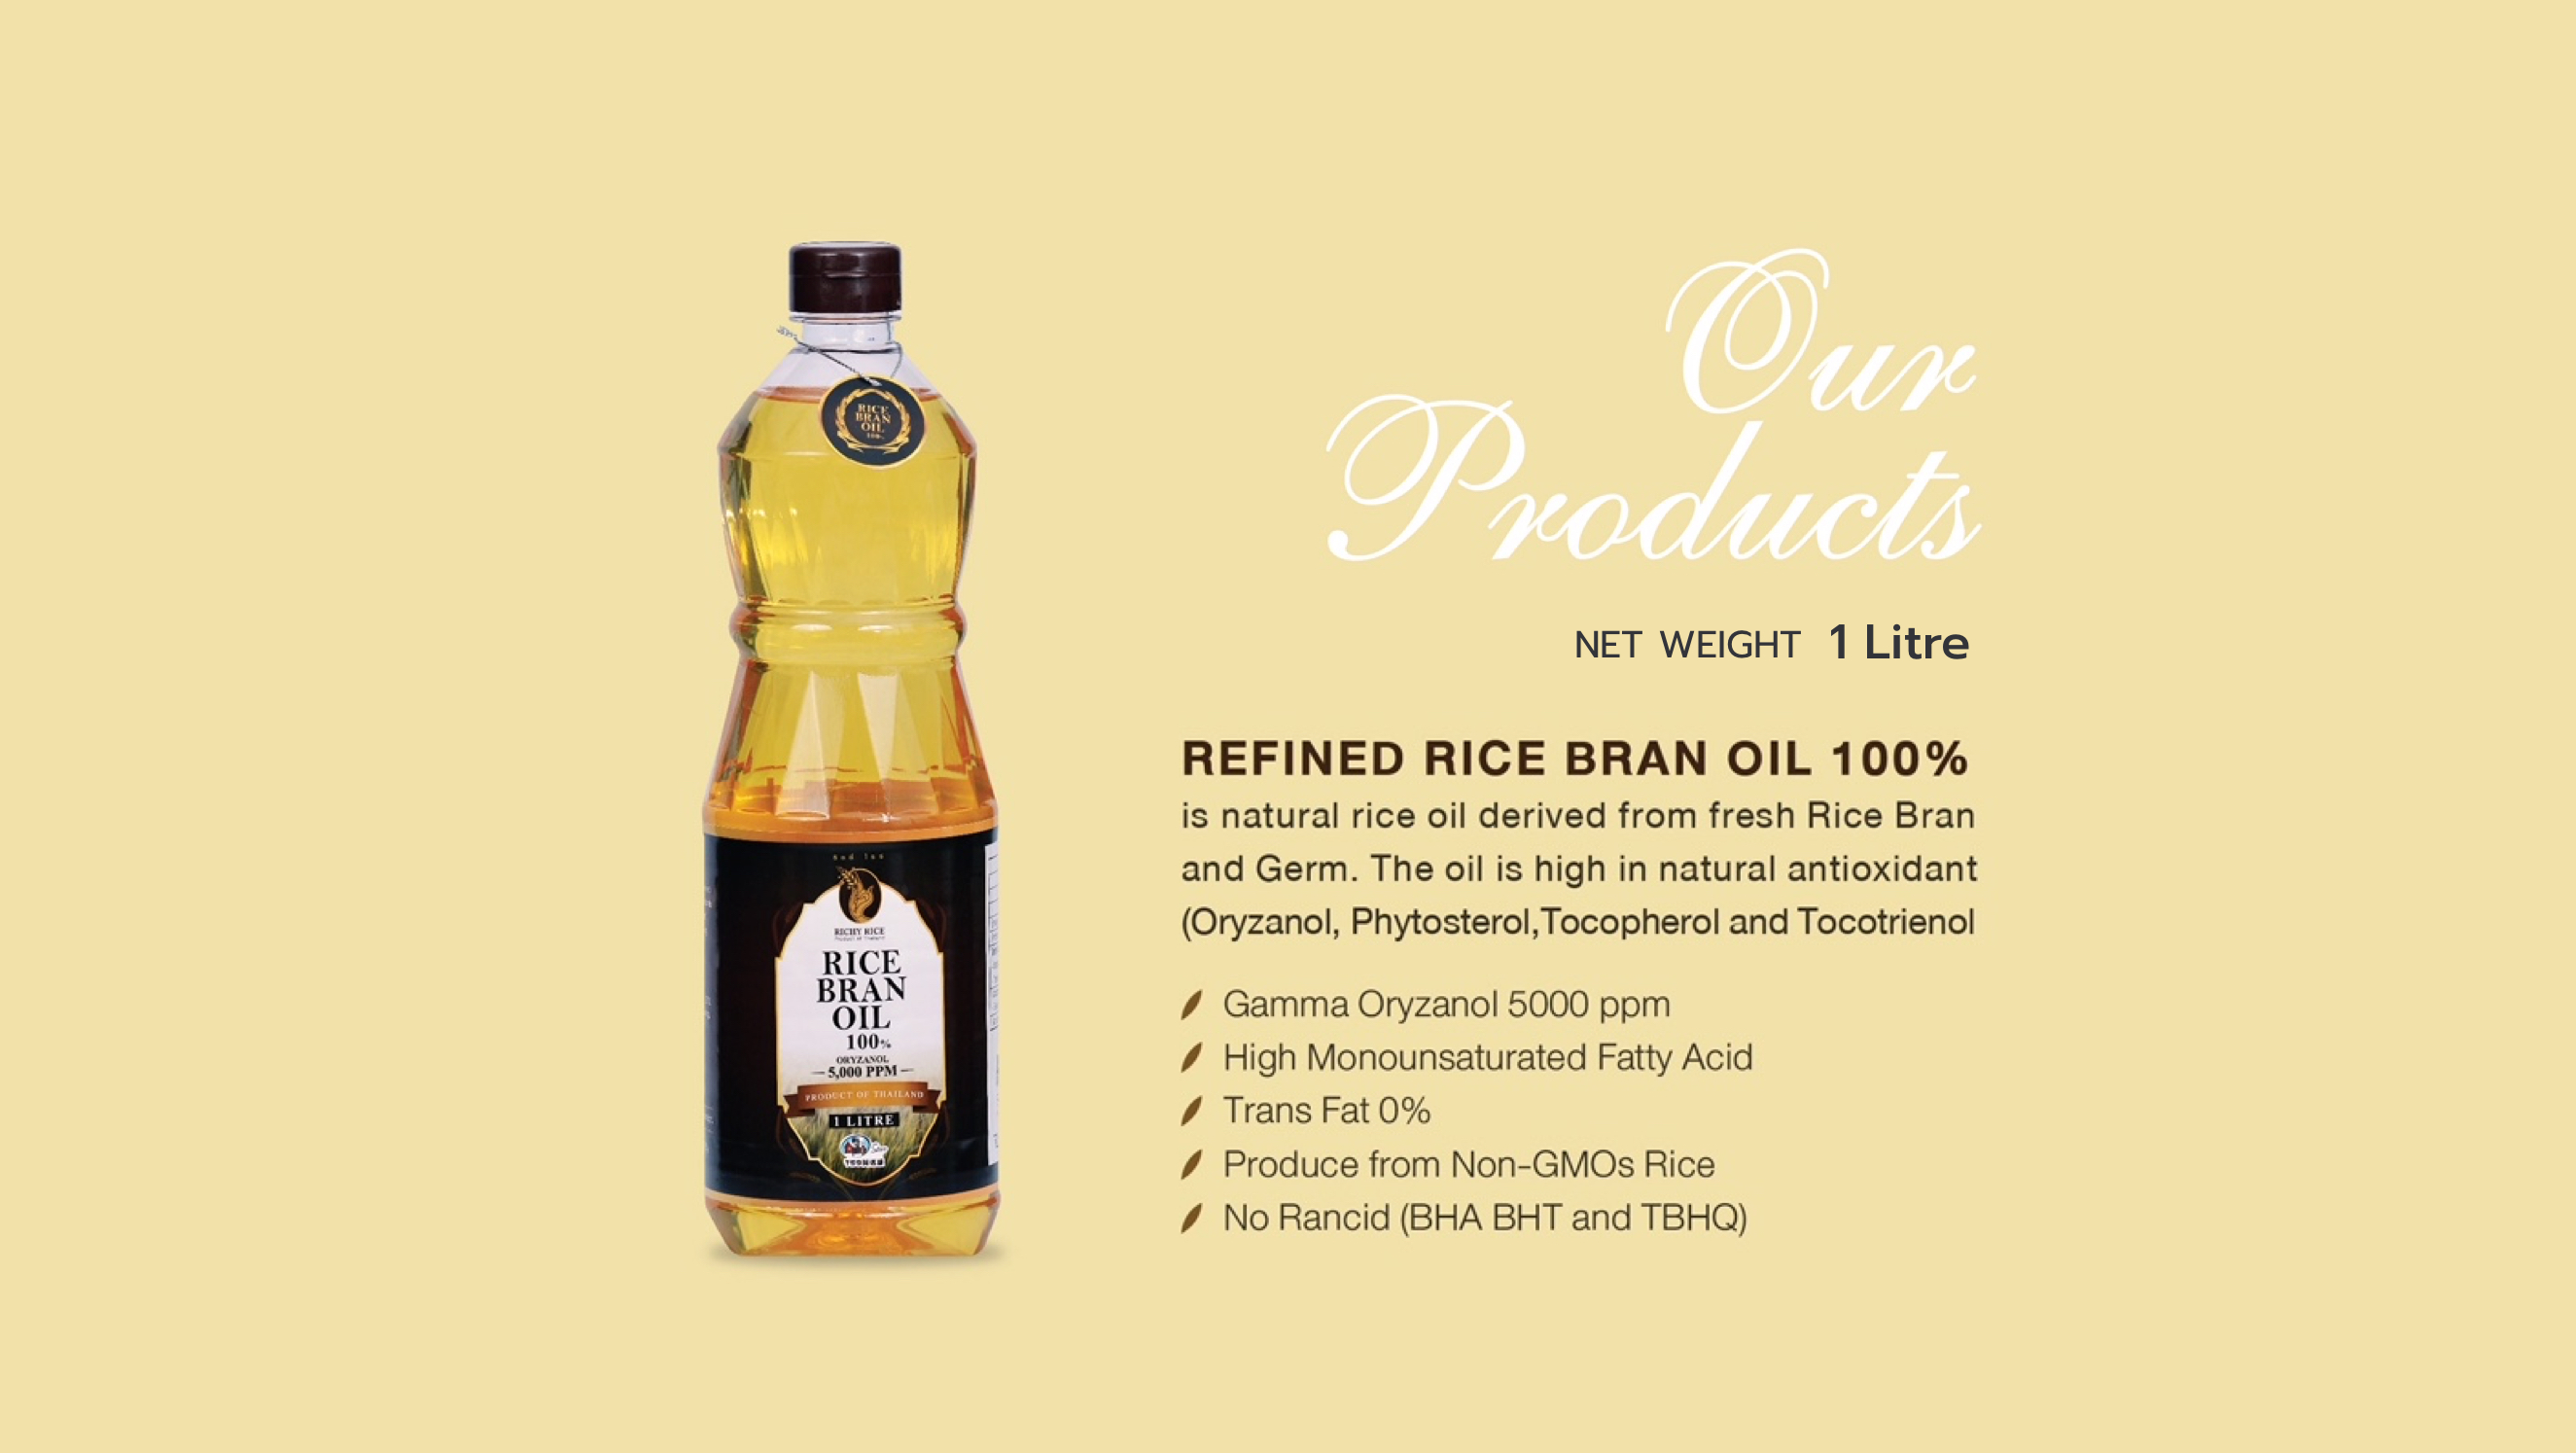 Refined Rice Bran Oil 1 Lite.